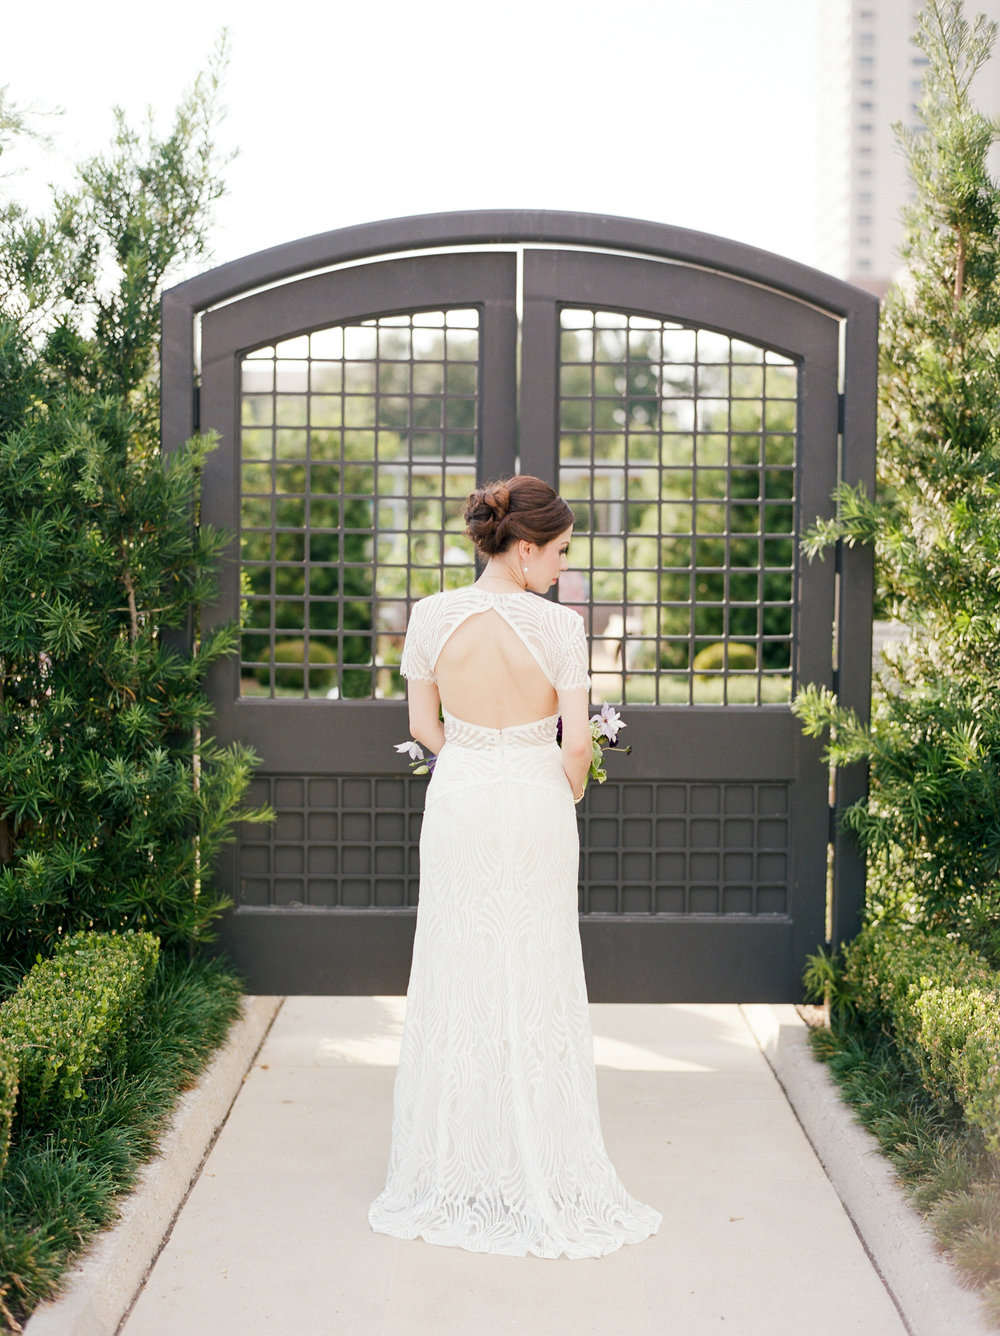 mcgovern-centennial-gardens-wedding-houston-wedding-photographer-bridals-film-austin-wedding-photographer-8.jpg